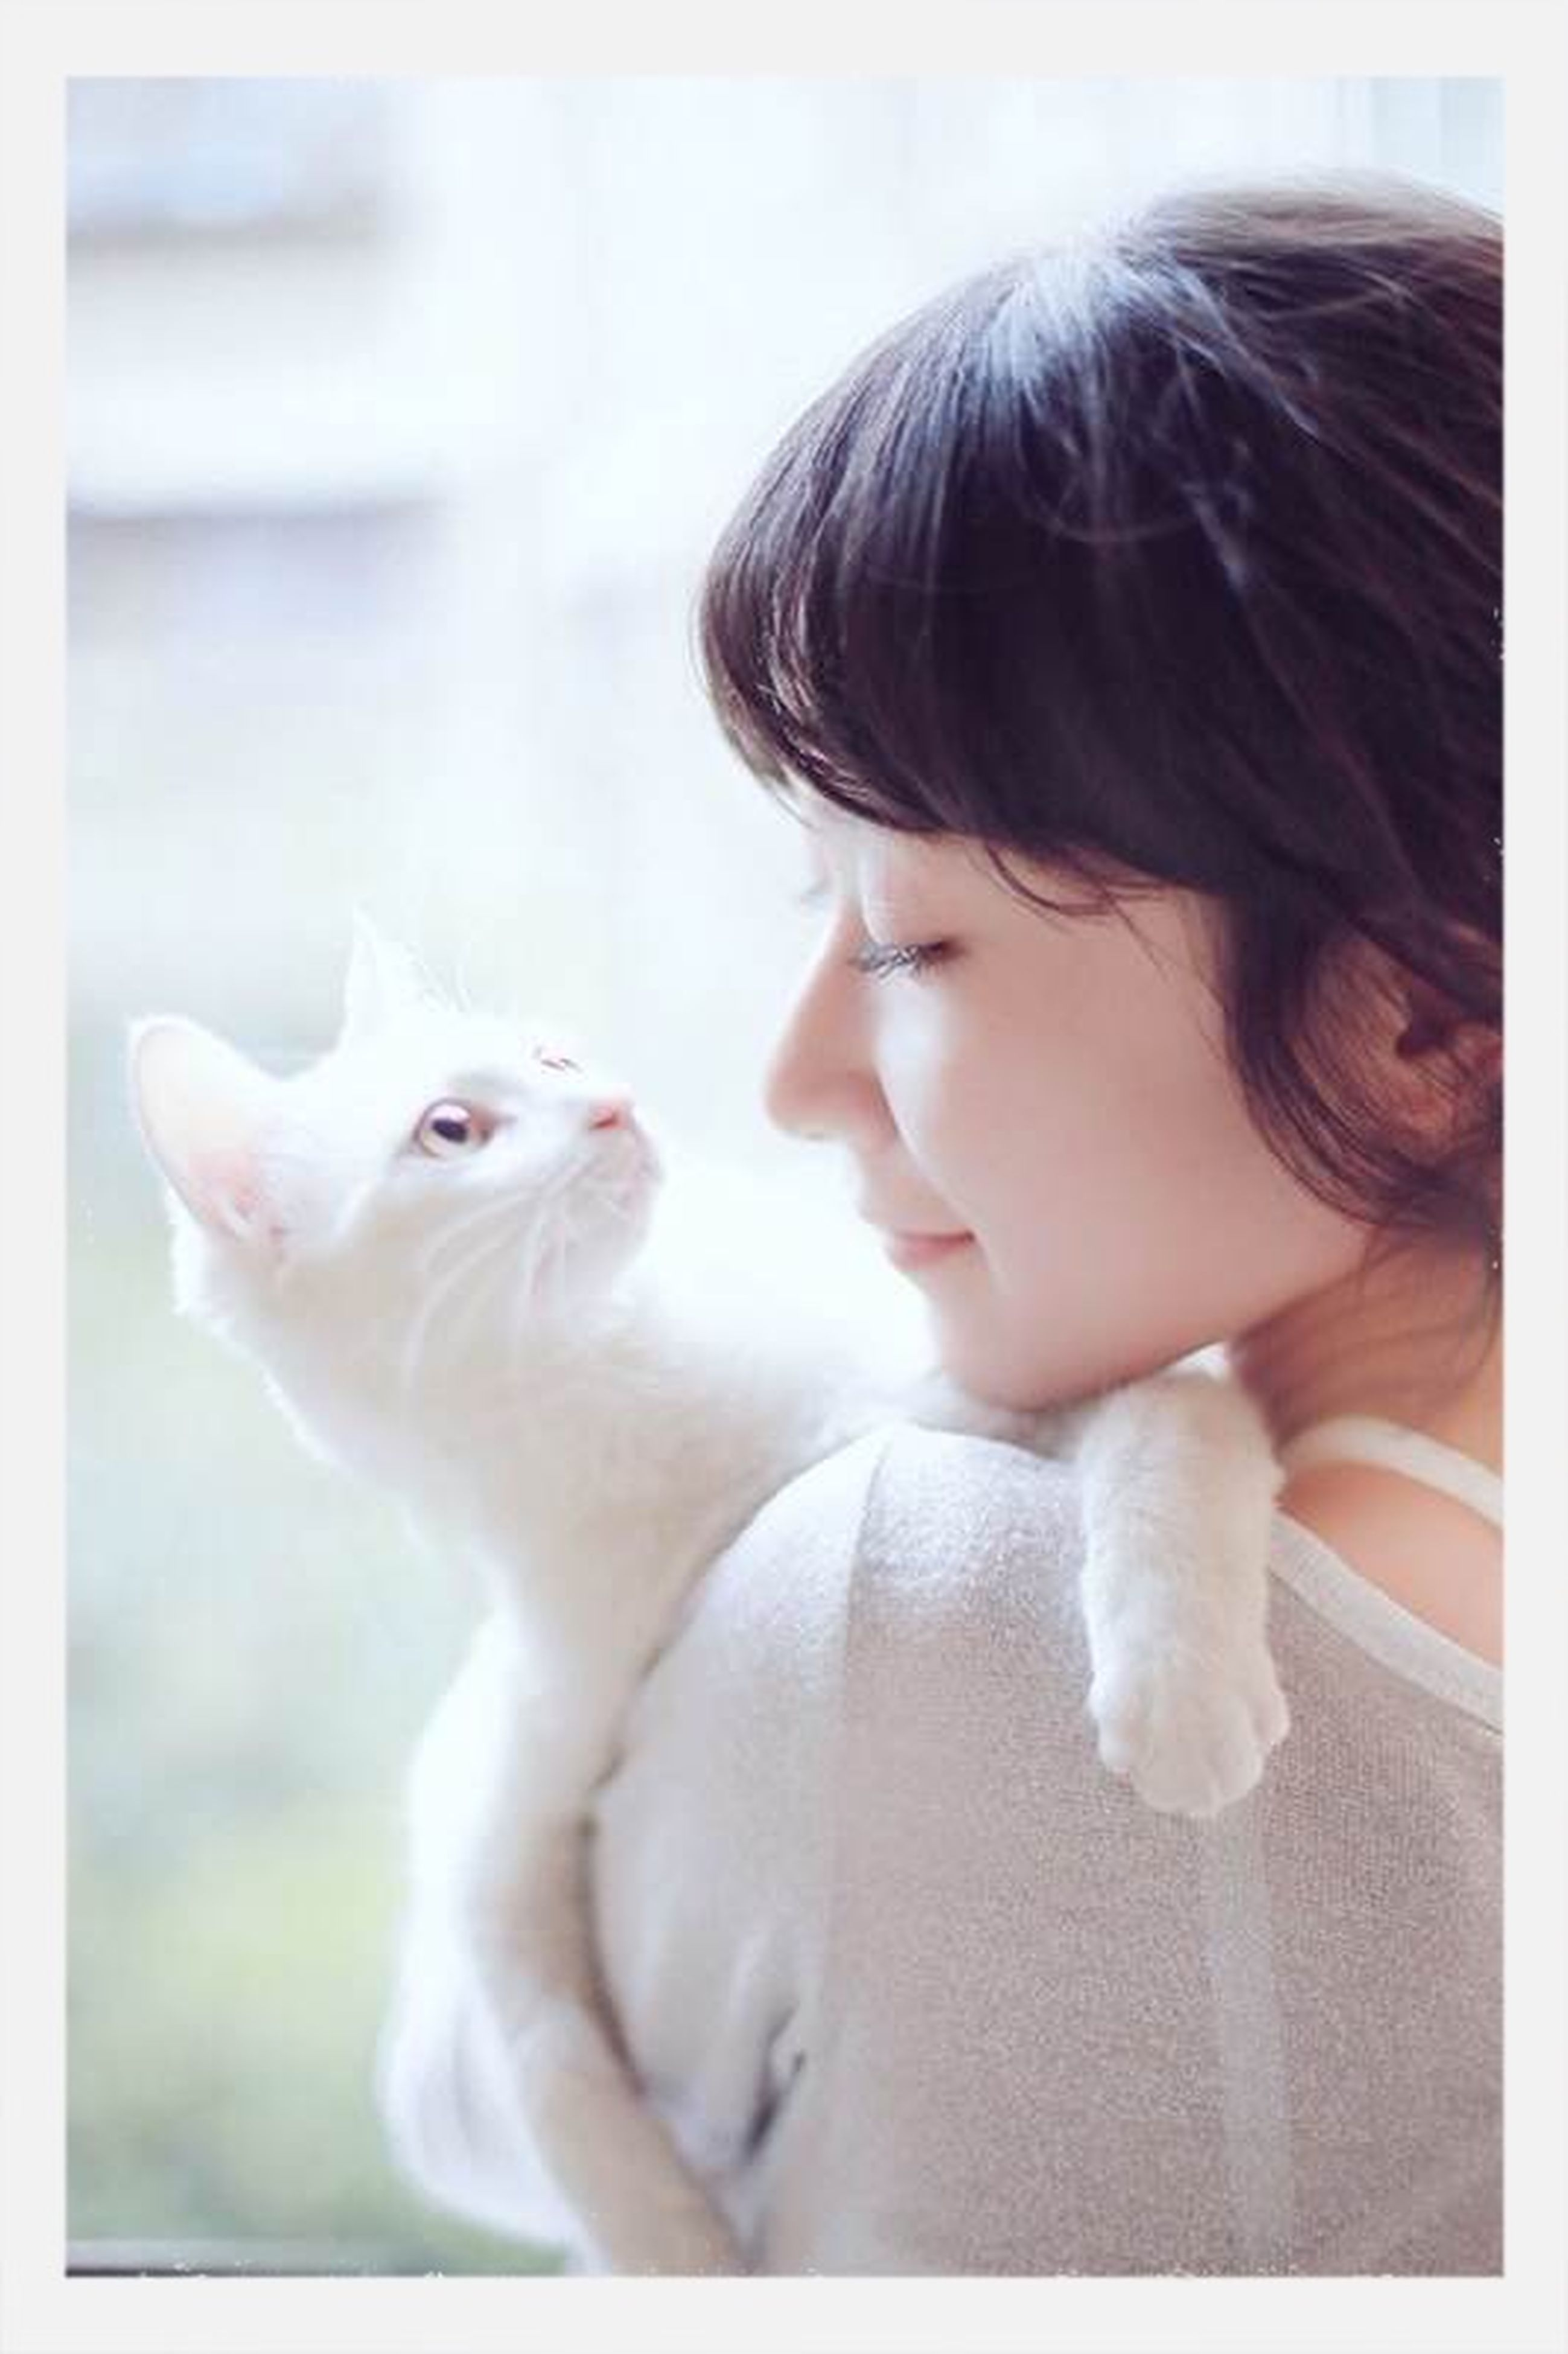 pets, domestic animals, indoors, animal themes, one animal, transfer print, person, auto post production filter, mammal, cute, childhood, domestic cat, looking away, portrait, home interior, innocence, lifestyles, elementary age